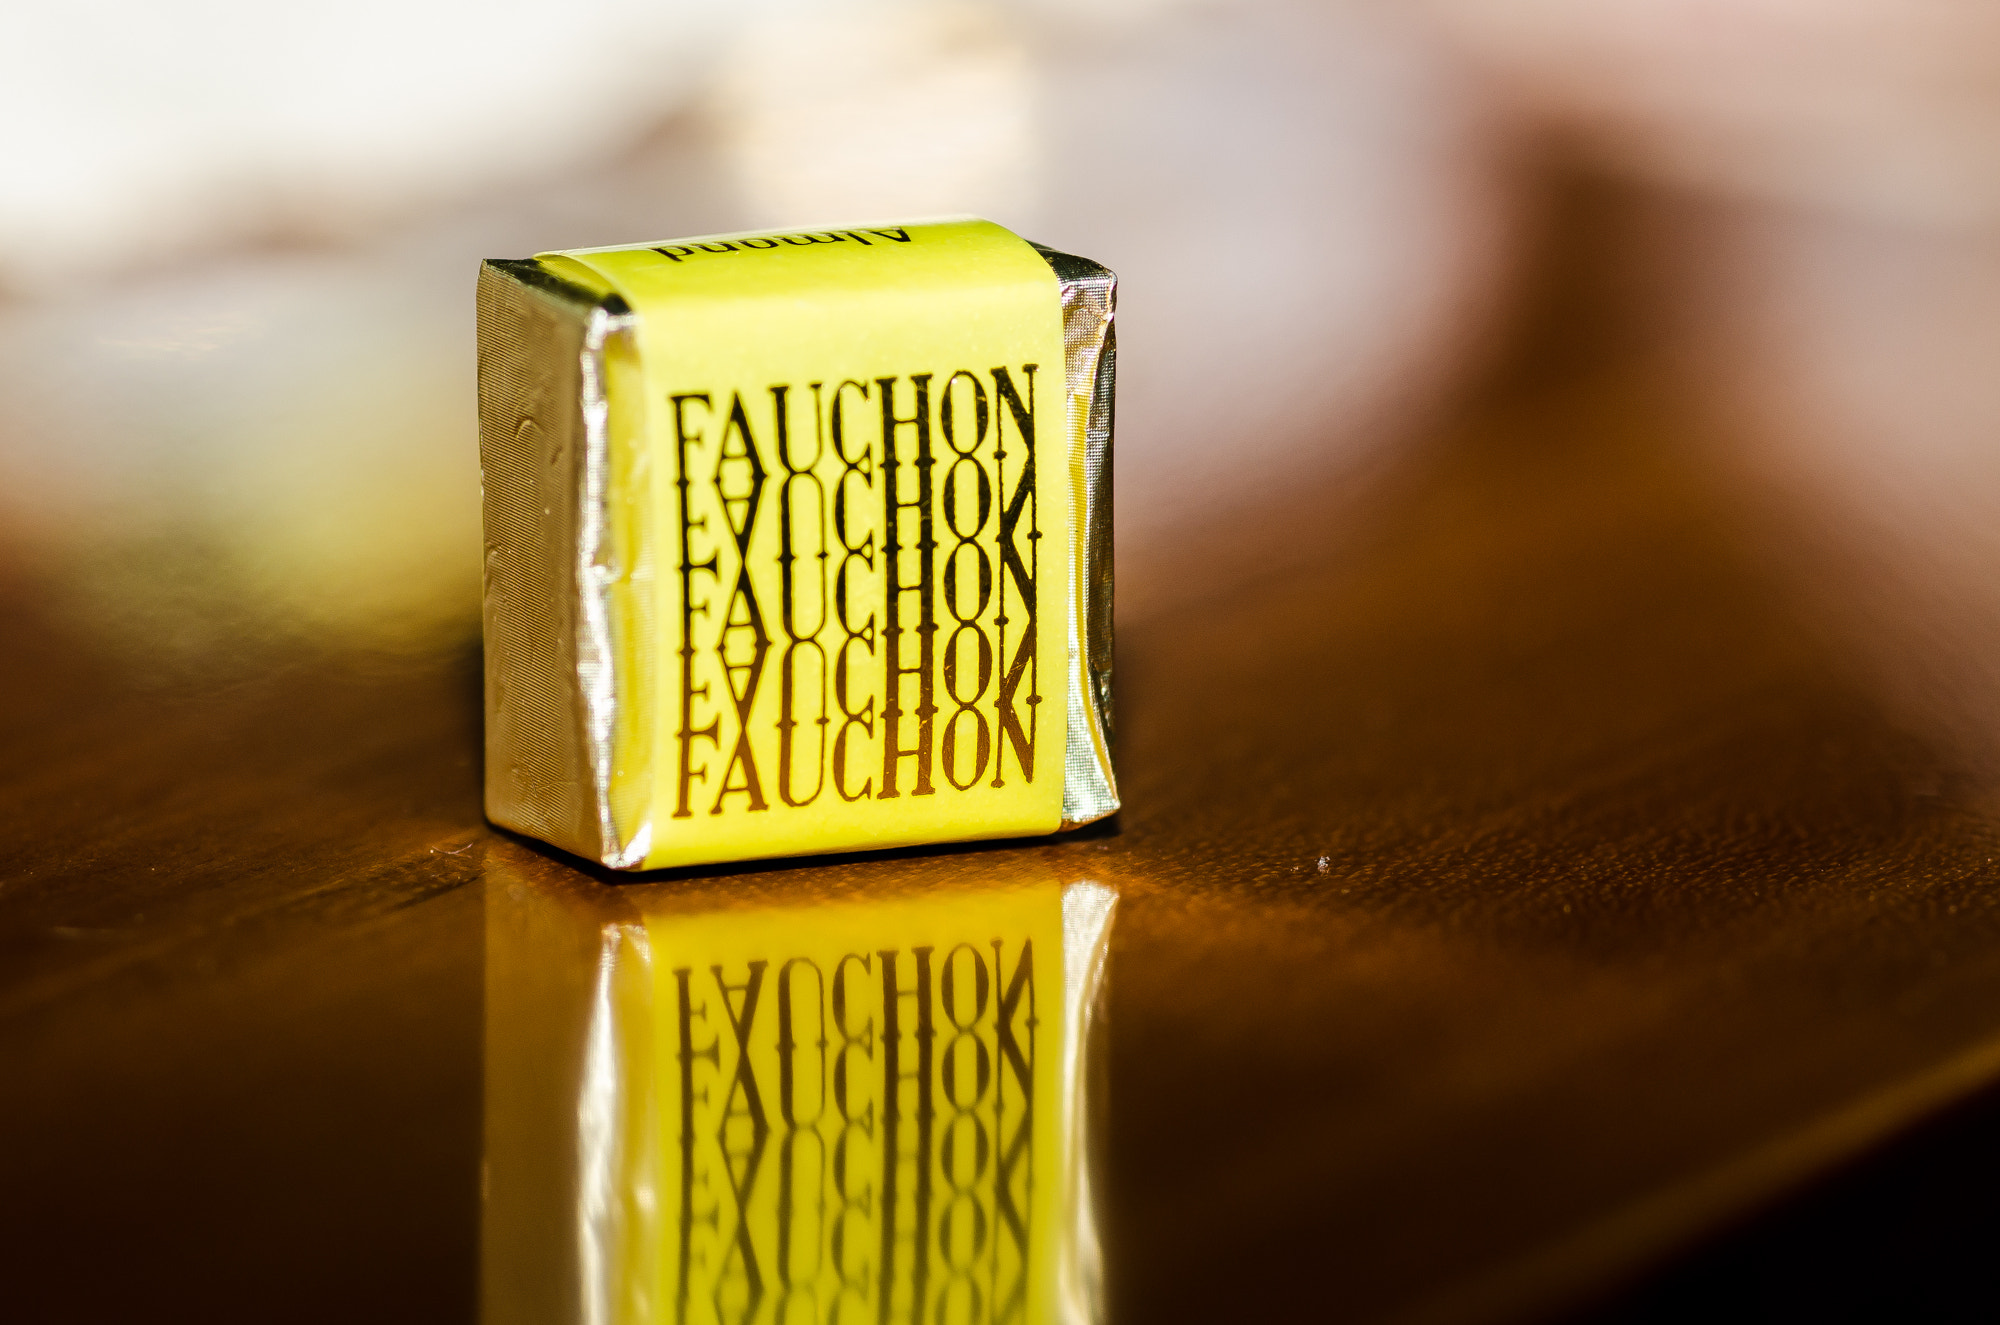 Photograph Fauchon Almond Chocolate  by Yousef Abdul Husain on 500px